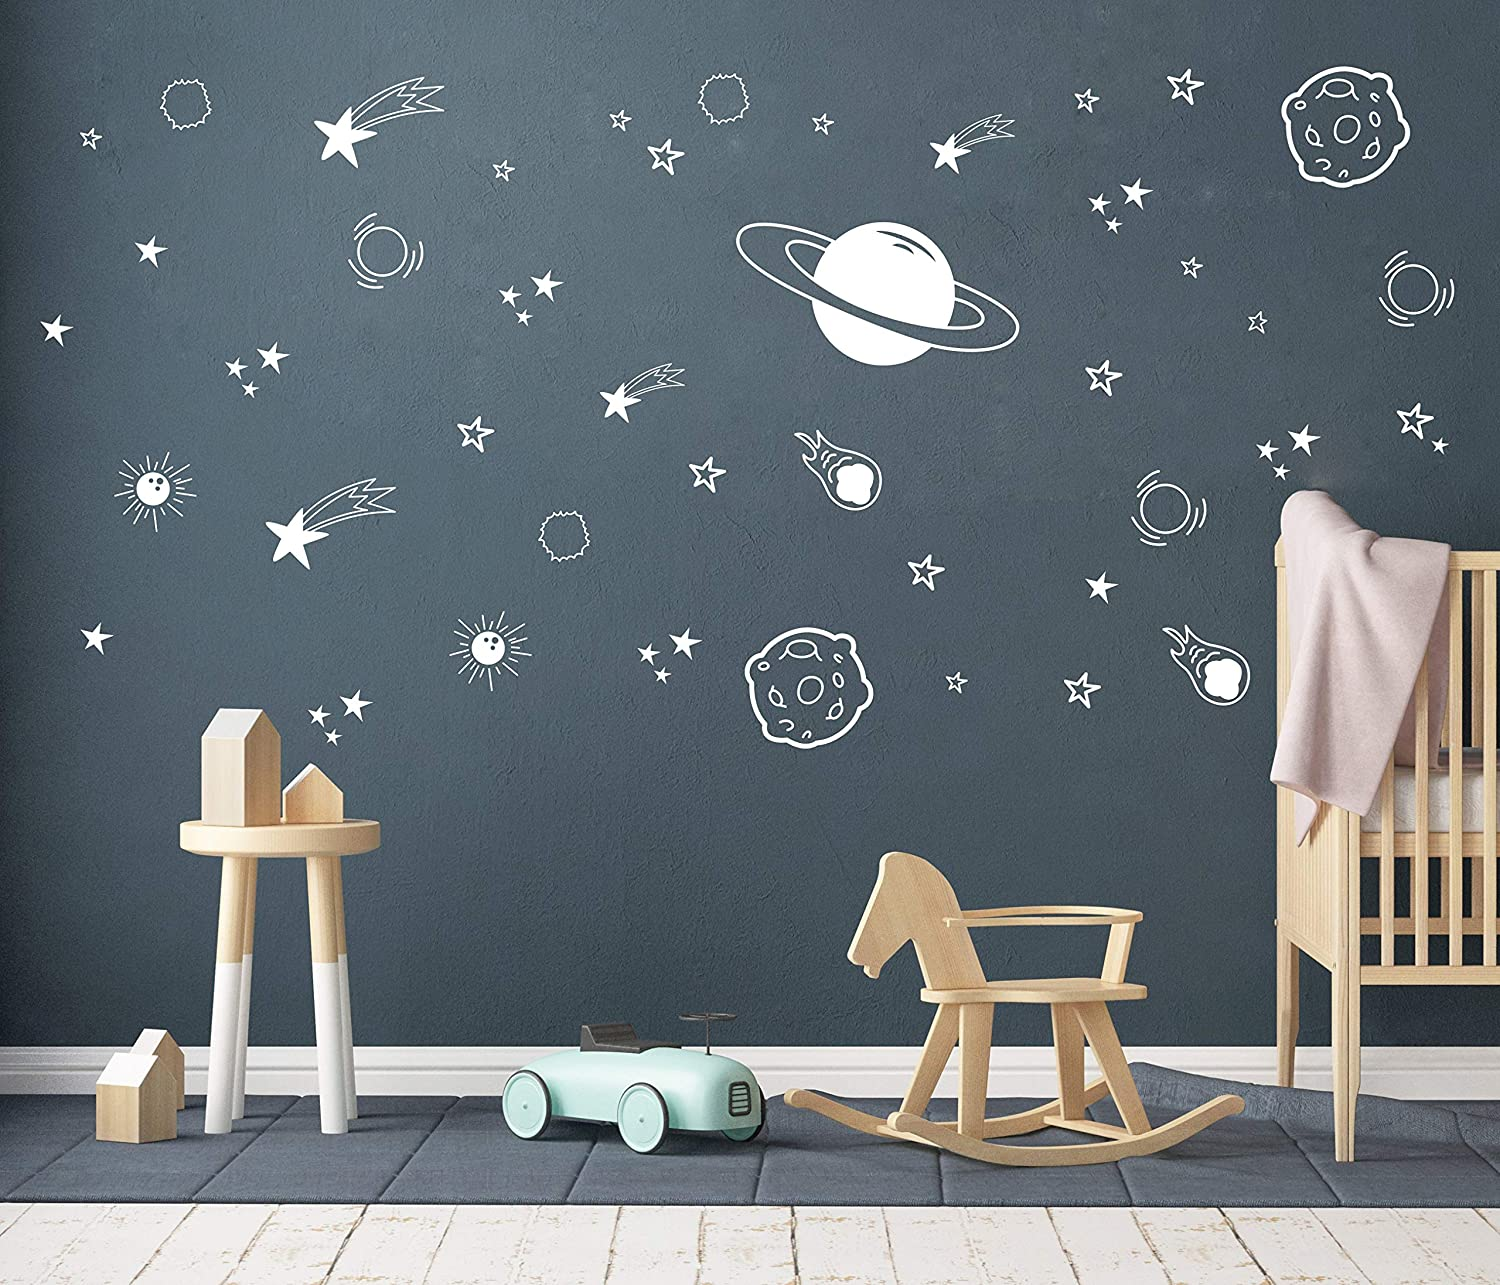 Amazon.com: Planet Wall Decal, Boys Room Decor, Outer Space Wall